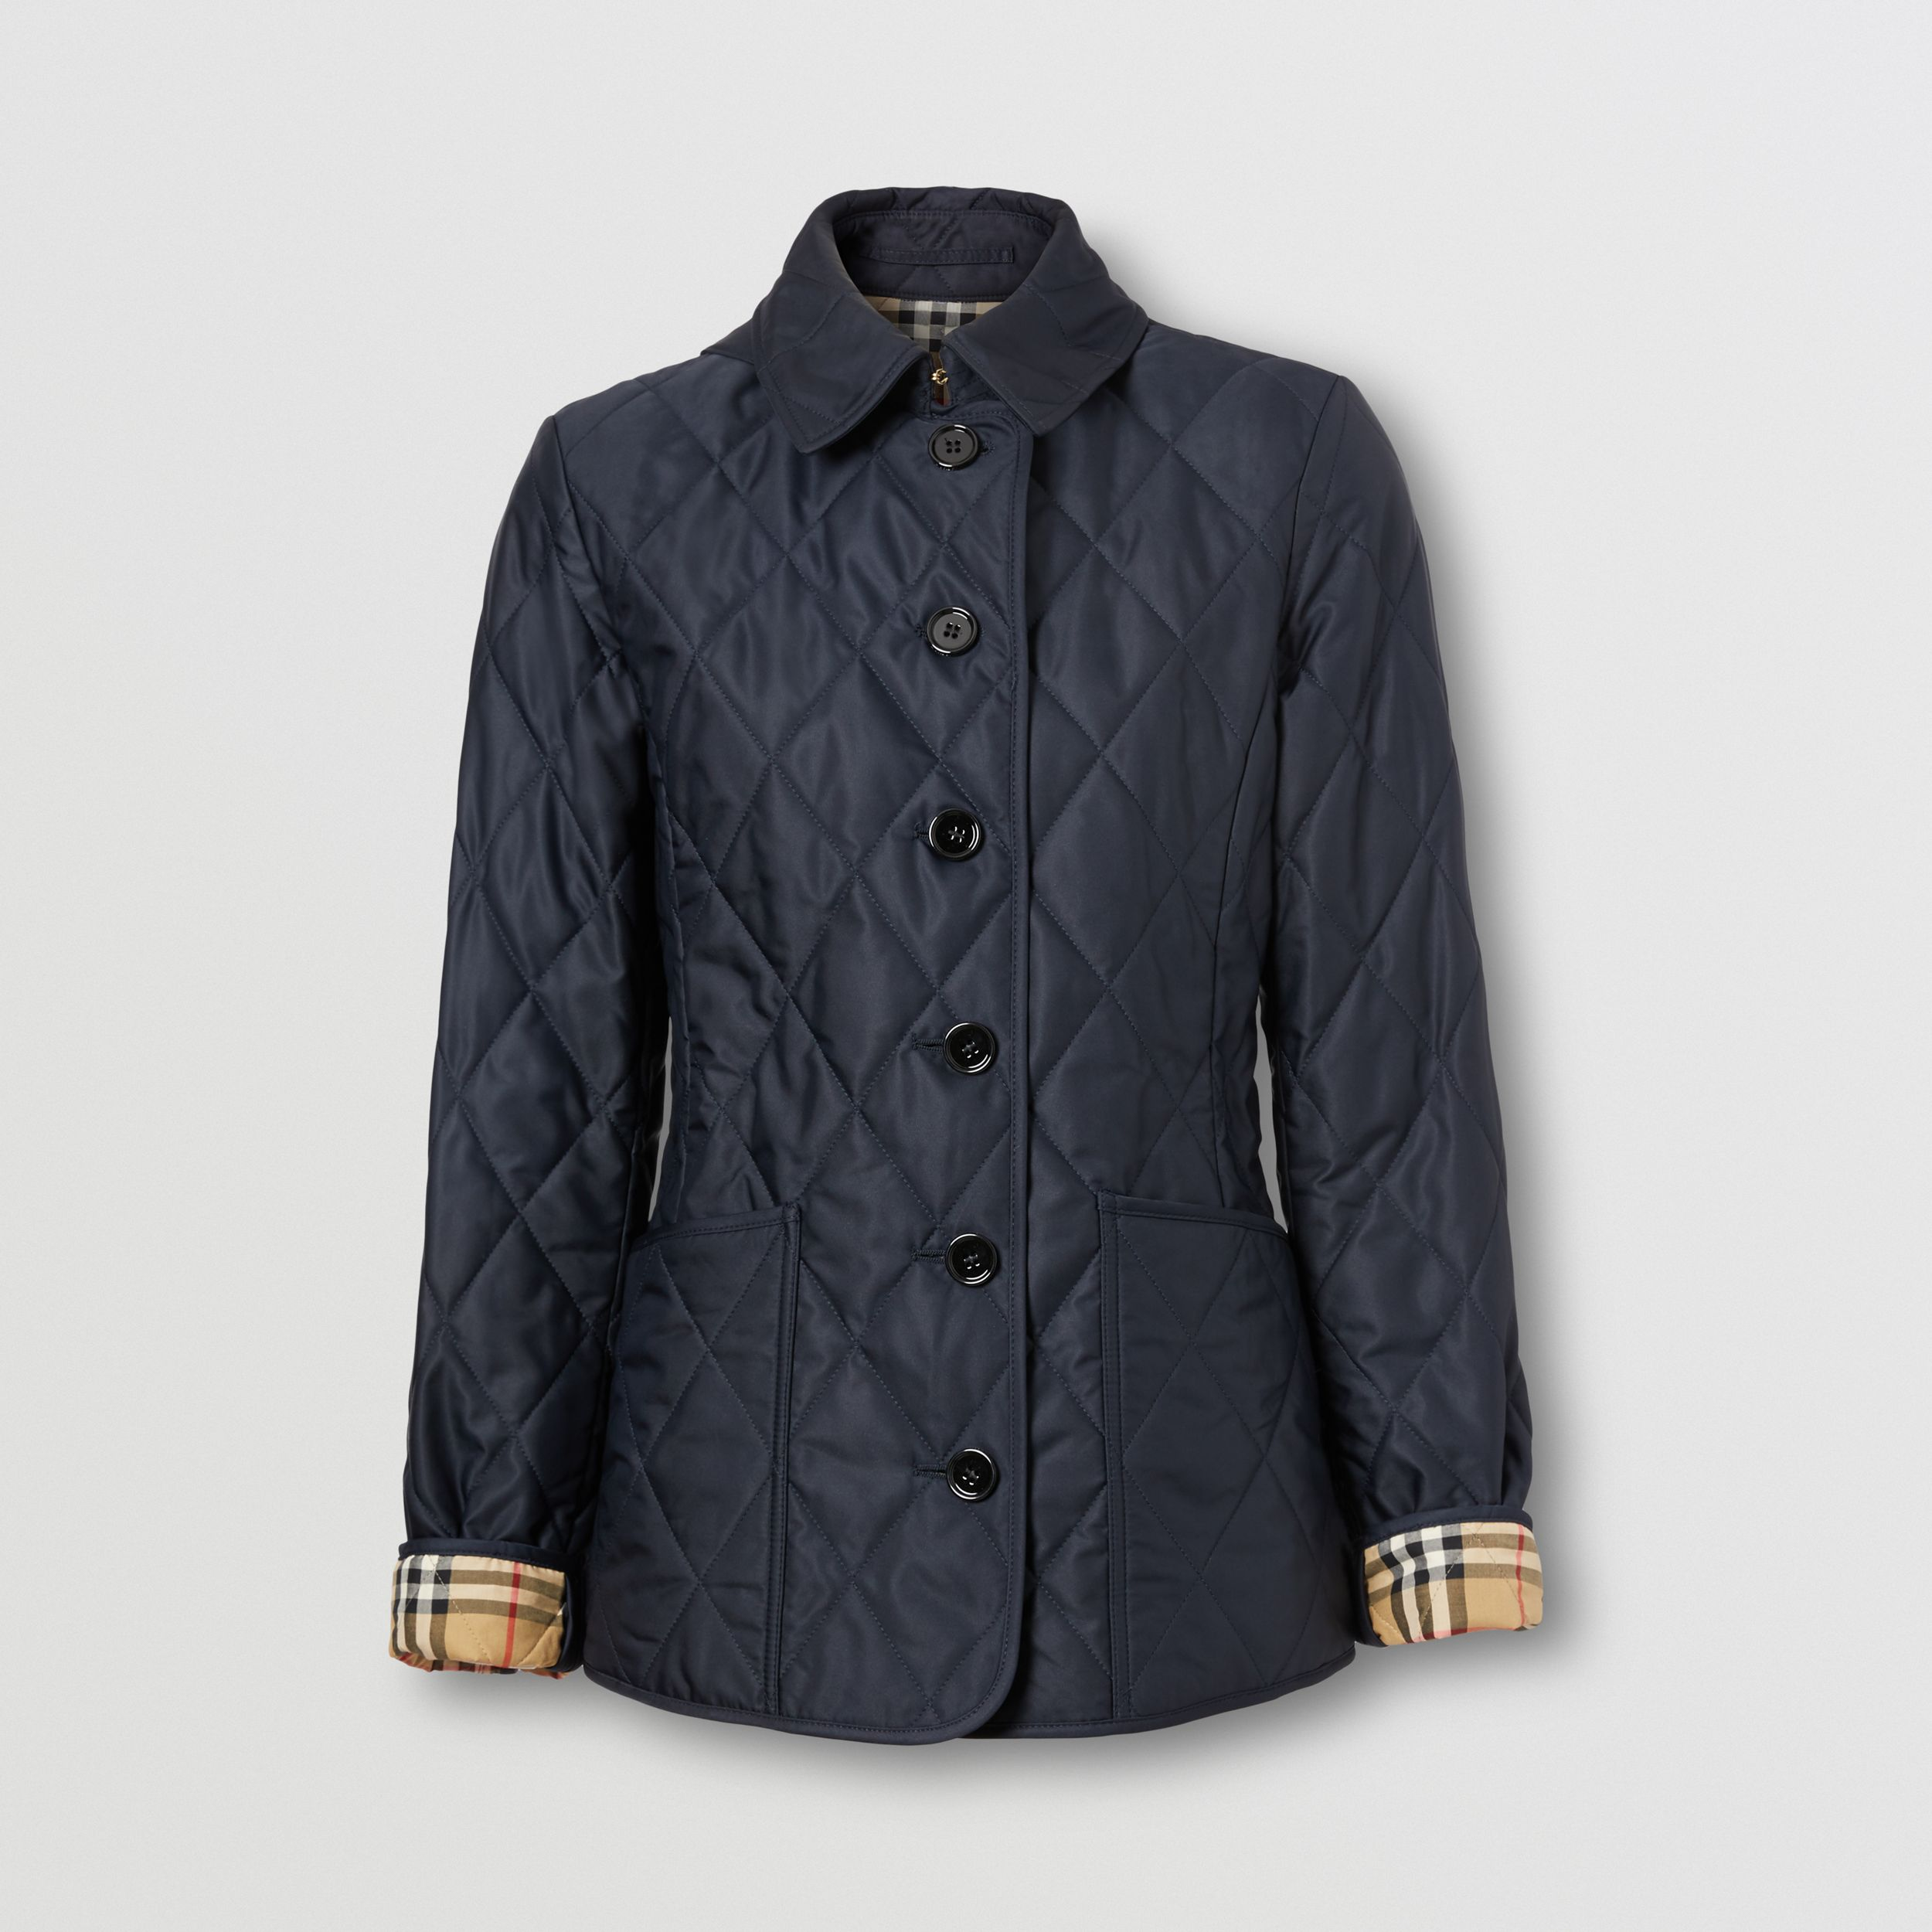 Diamond Quilted Thermoregulated Jacket in Midnight - Women | Burberry Australia - 3